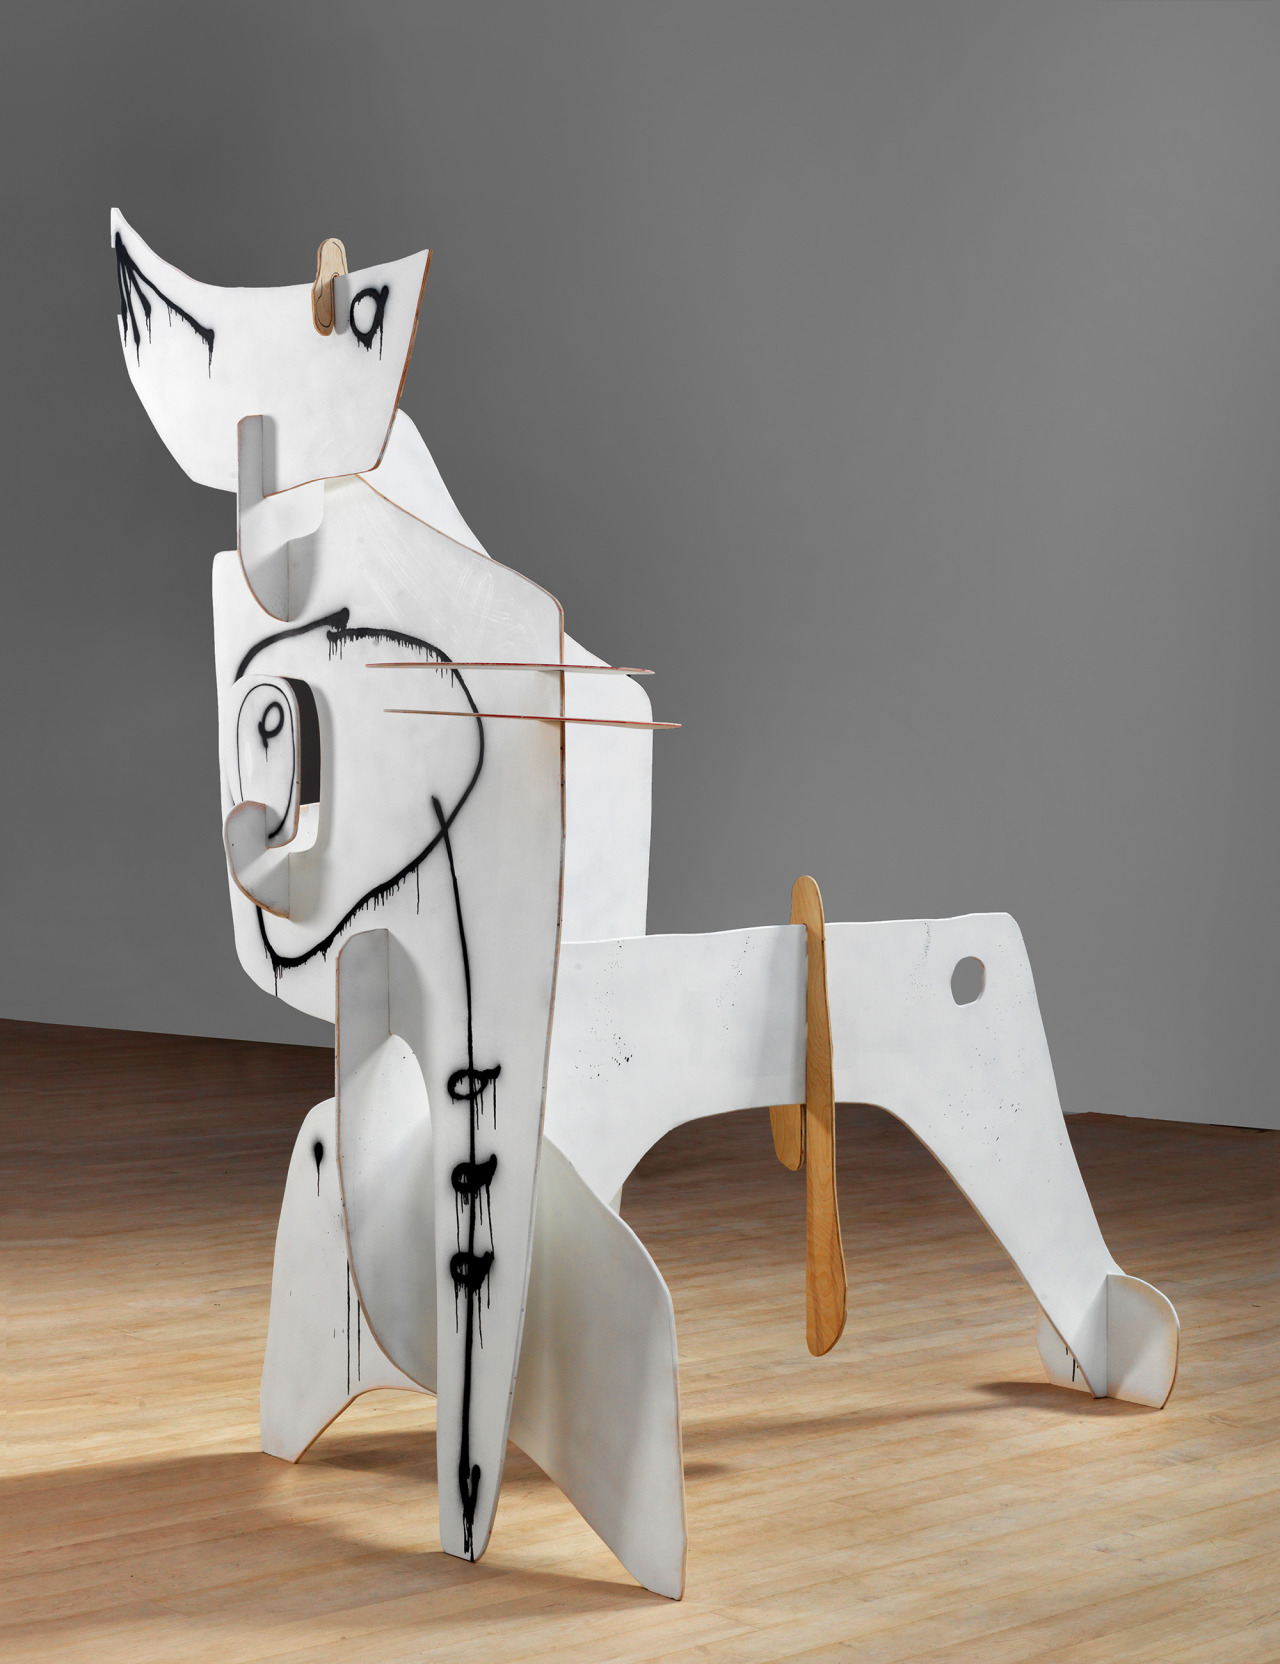 Arron Curry, Phantom, 2010 painted wood, 111 × 112 × 80 inches Download Image Visit Source @ michaelwerner.com